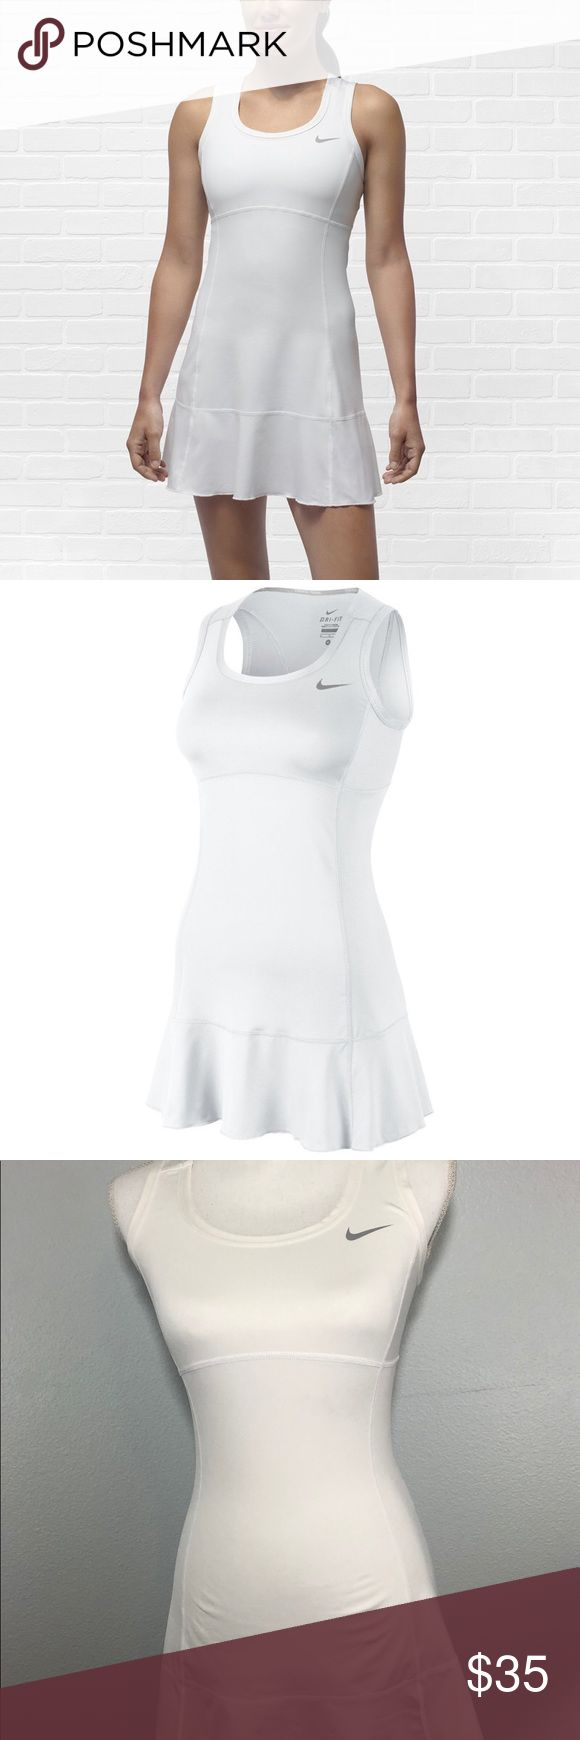 Nike Women Flounce Knit White Tennis Dress NWOT. Only tried on. Did not wear out. Beautiful Nike Tennis Matte White Tennis Dress. Size Small.   Any questions please ask. Nike Dresses Mini